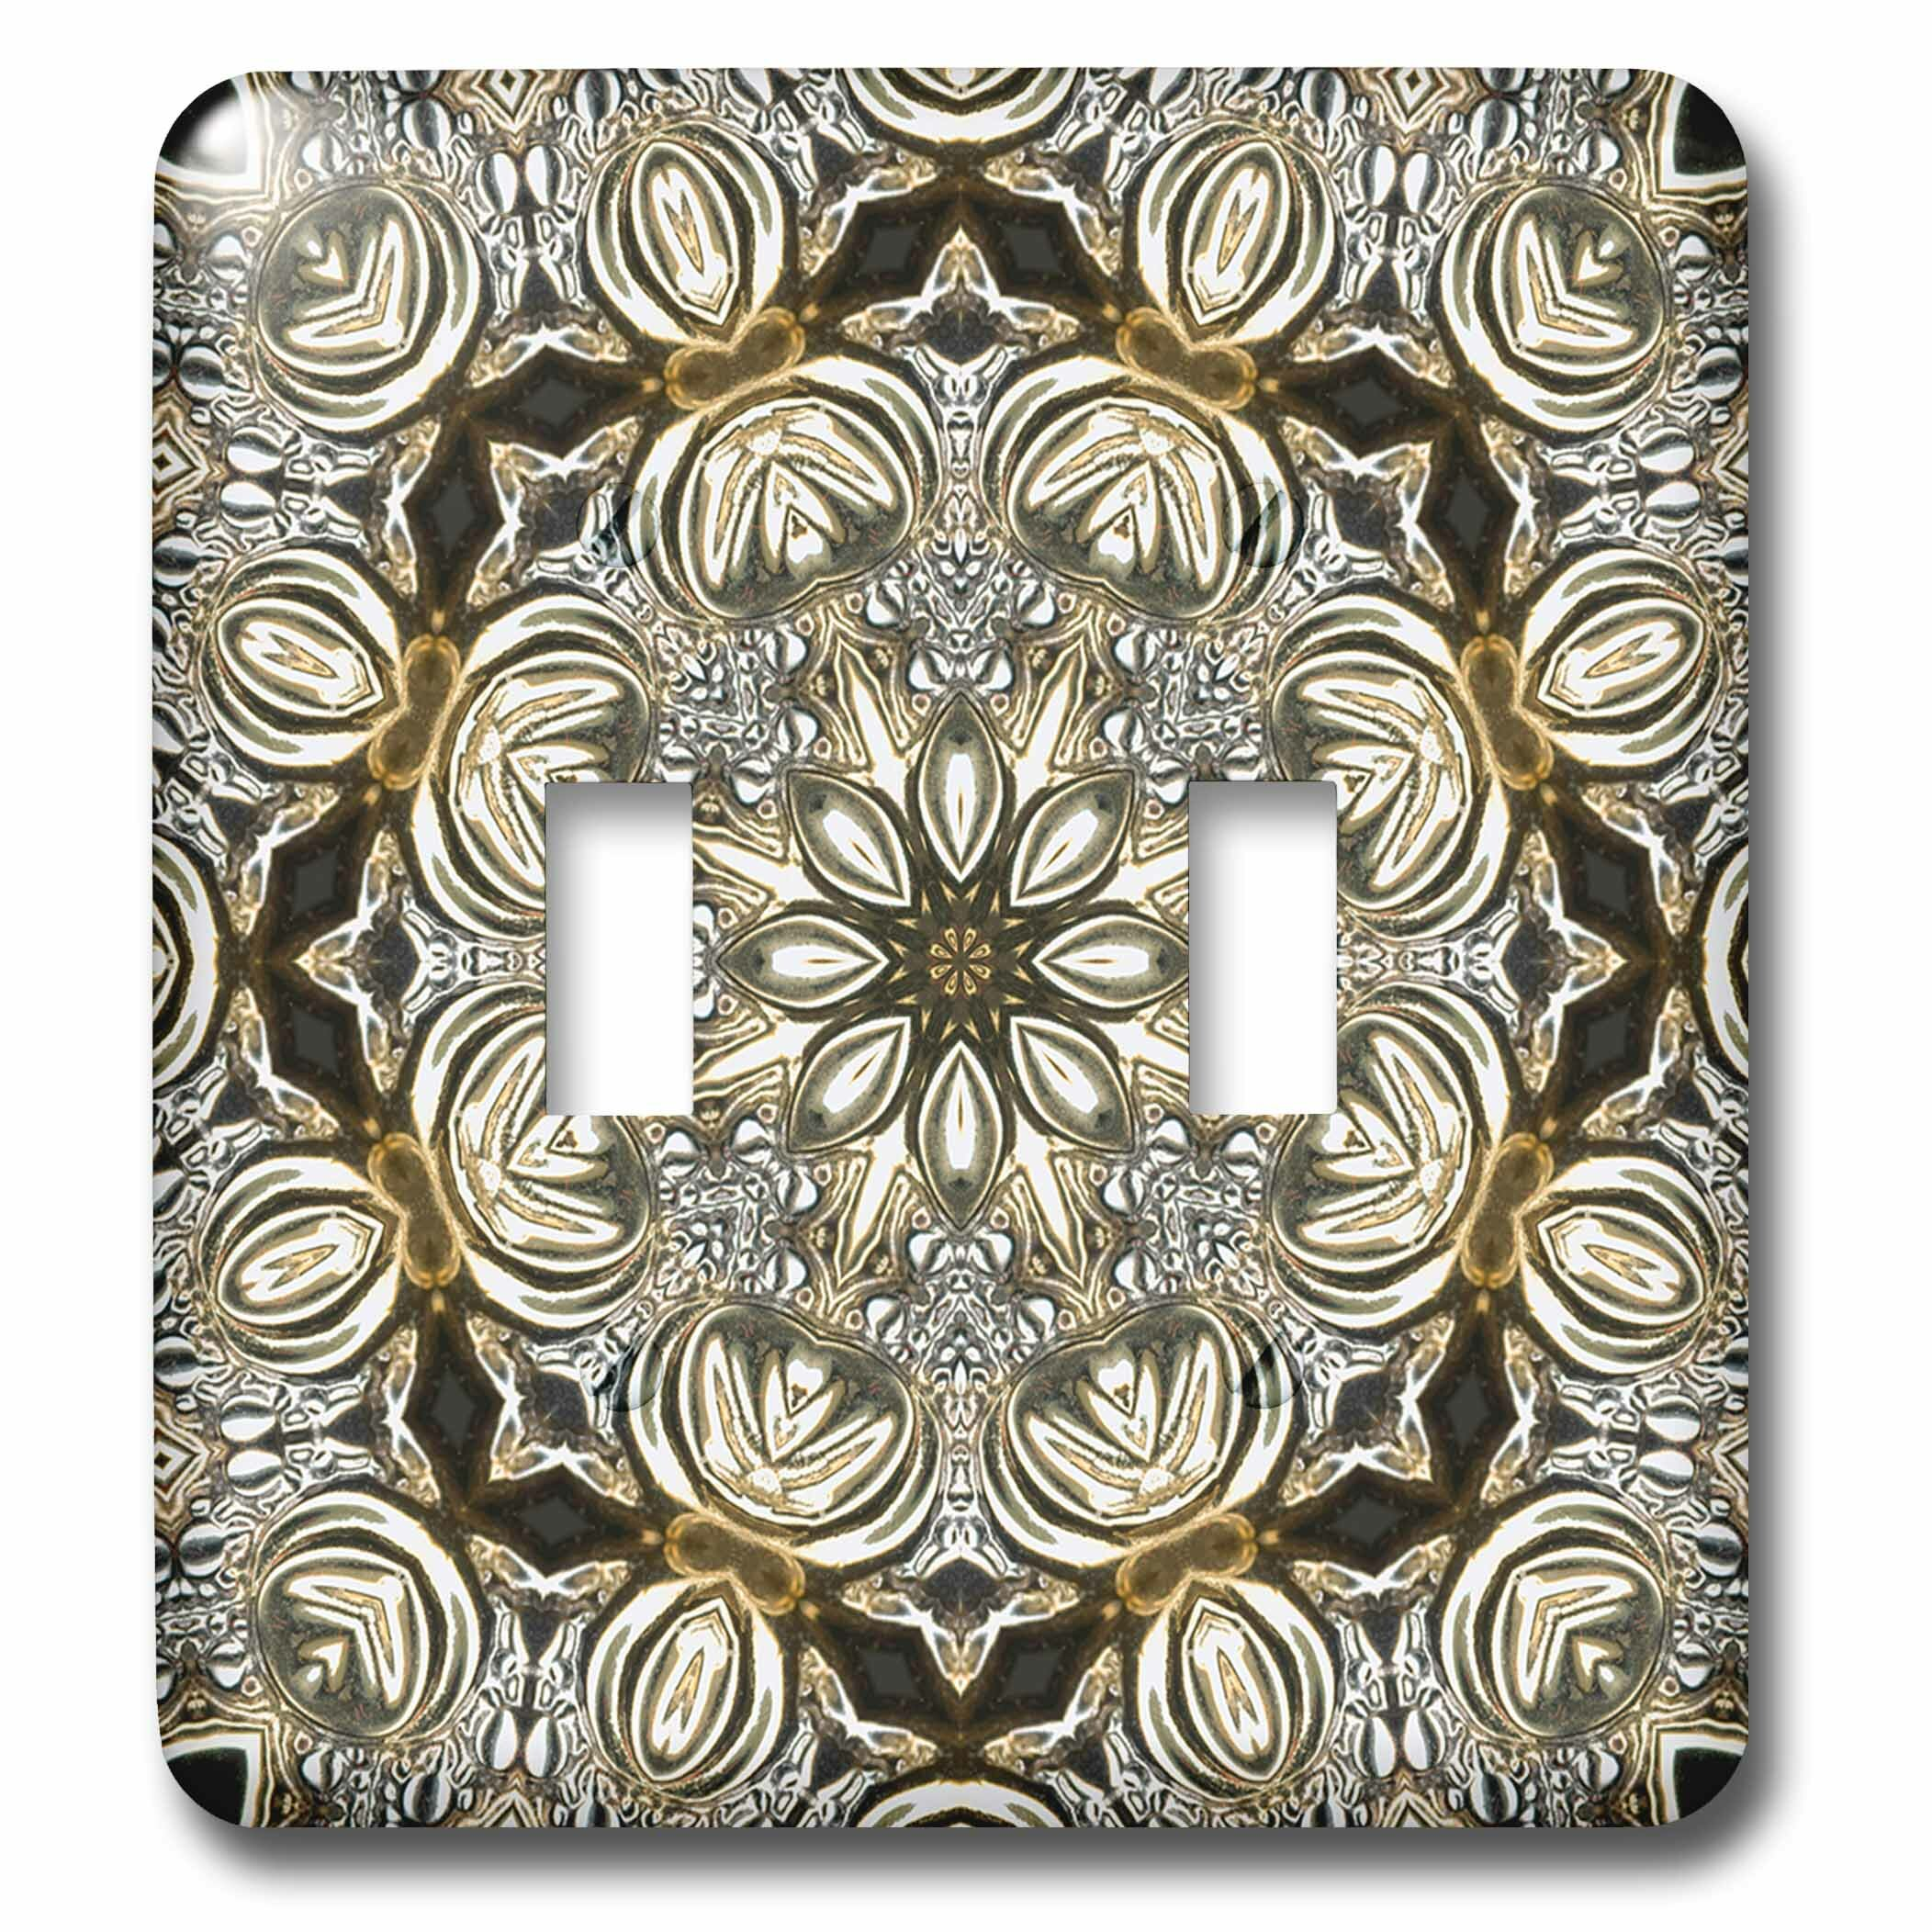 3drose Rich Jewelry Elegant Flower Plate Mandala 2 Gang Toggle Light Switch Wall Plate Reviews Wayfair